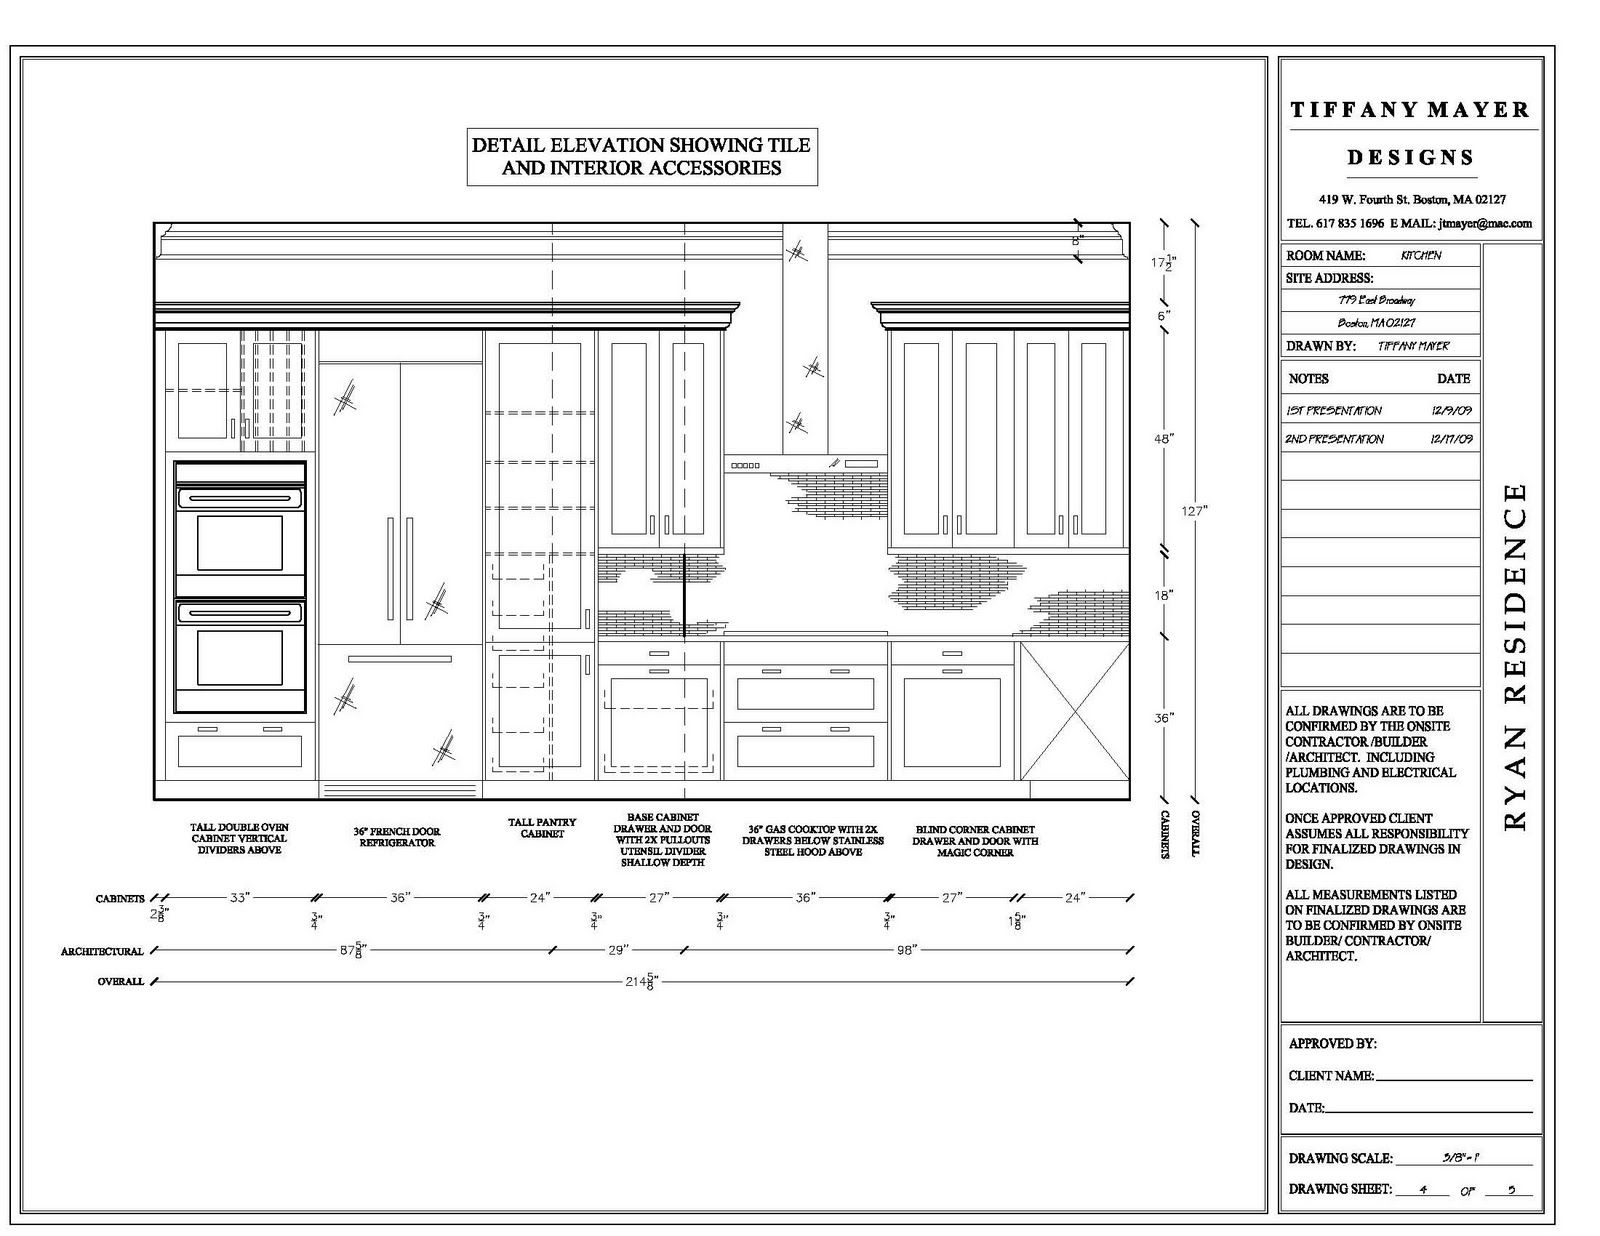 Bathroom section drawing - Elevation Drawings Cabinet Detail Drawing Size Interior Design Elevation Drawings Interior Design Elevation Drawings L 1206d484bf9eab30